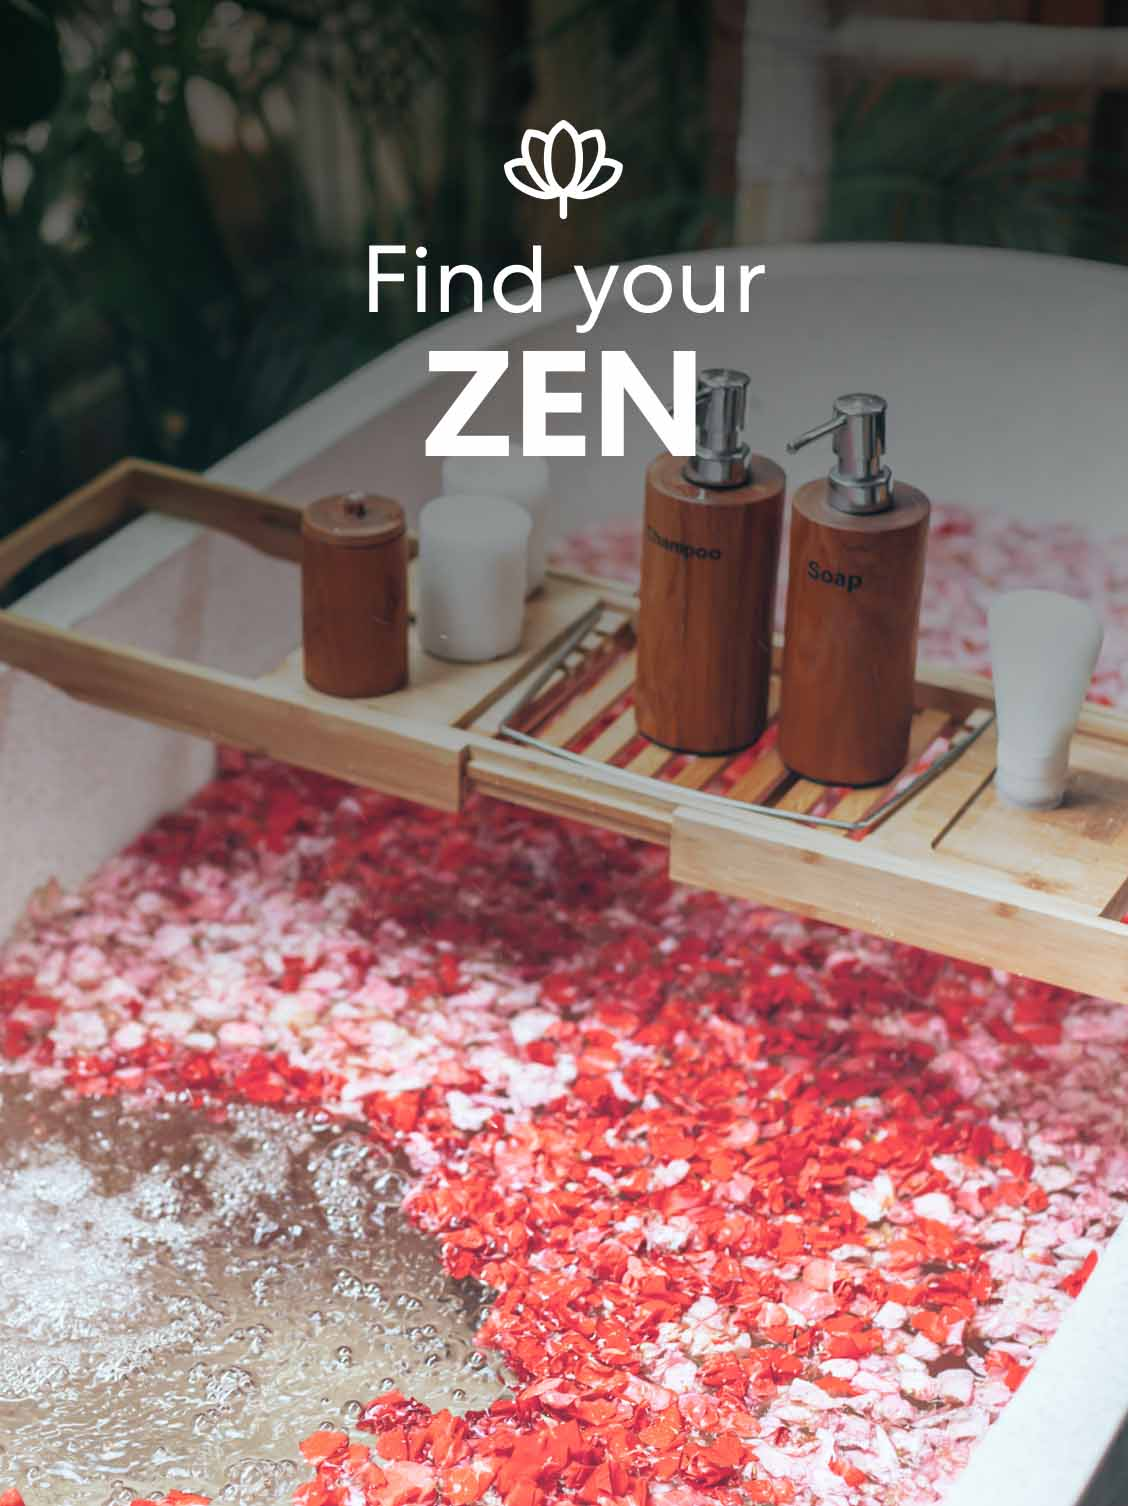 An empty and inviting bath, filled with rose pedals and salts. A wooden tray of soaps and lotions lays across the bathtub. A superimposed title reads: Find your zen.